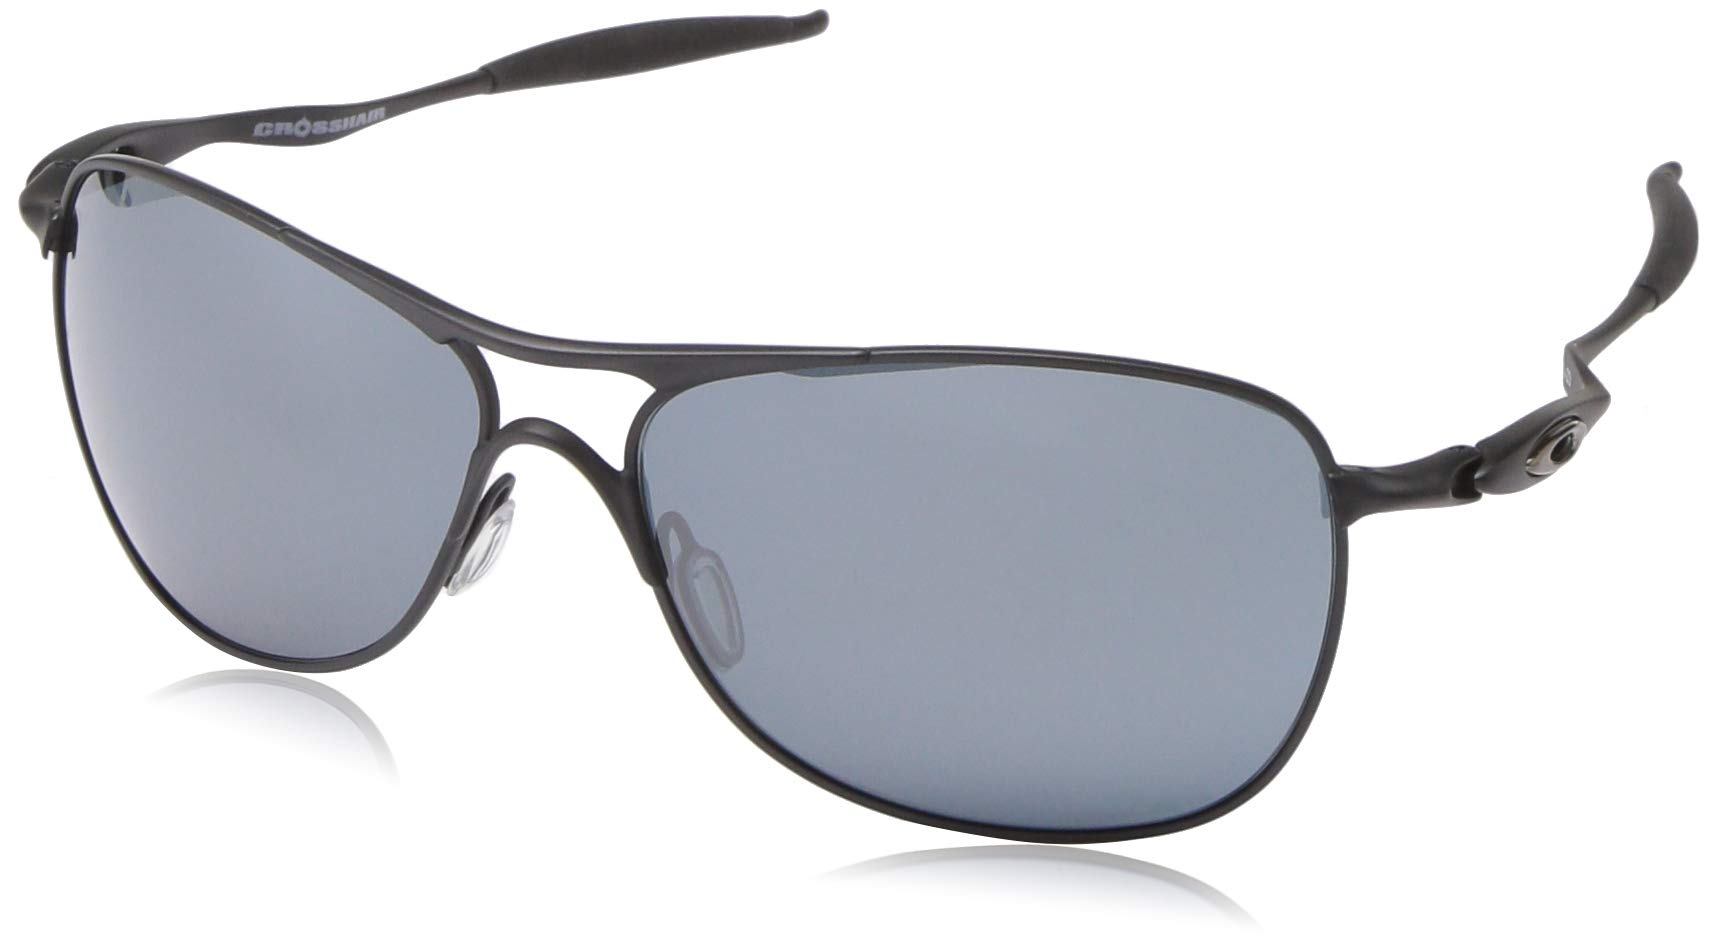 Oakley Men's OO4060 Crosshair Aviator Metal Sunglasses, Matte Black/Prizm Black, 61 mm